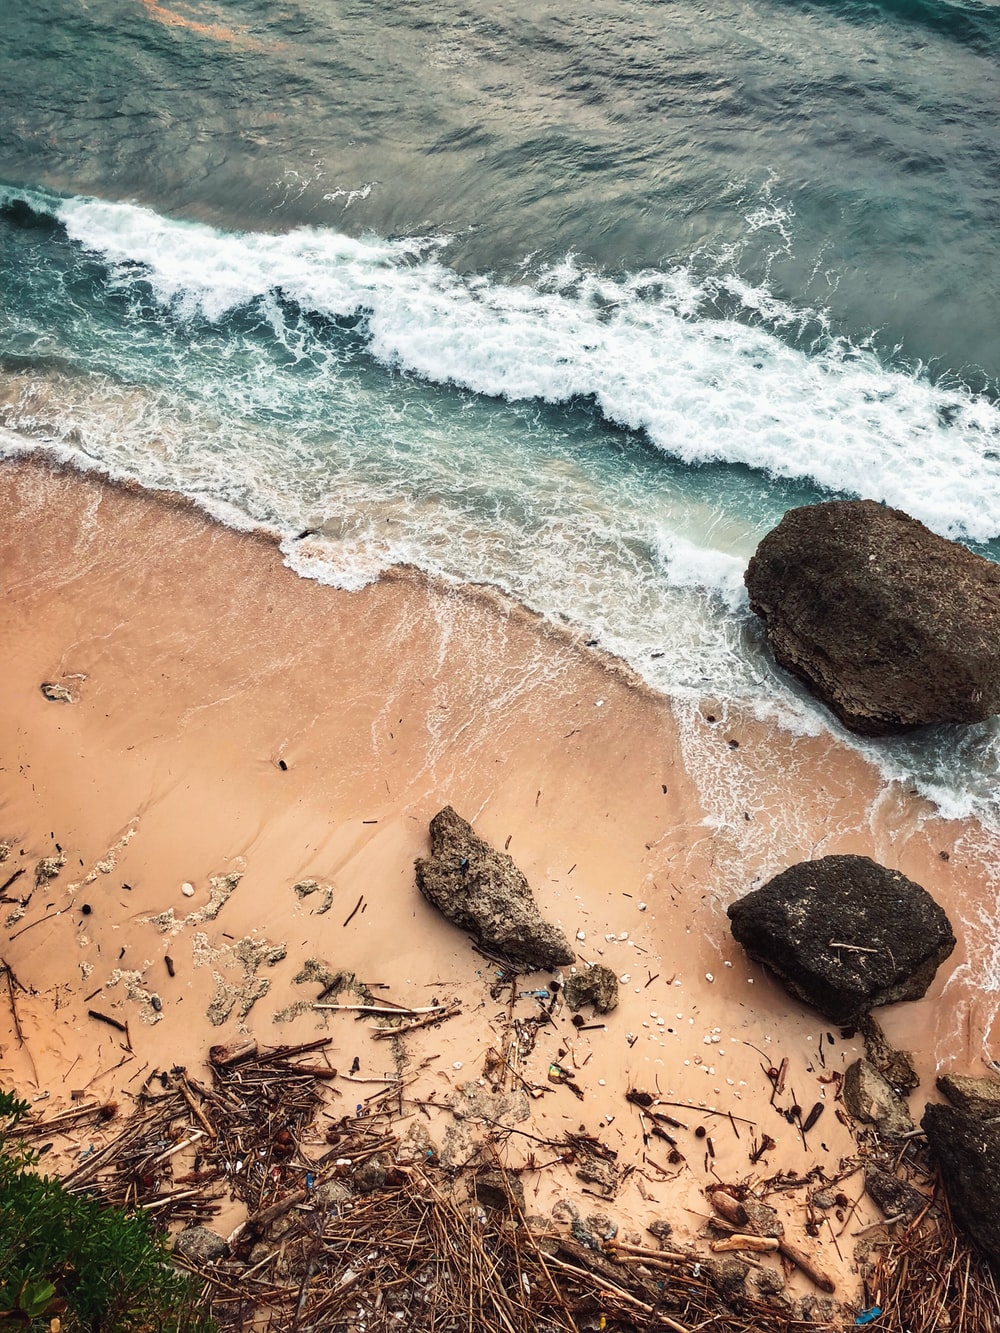 aerial view photography of rocks and wood sticks on shore near ocean during daytime